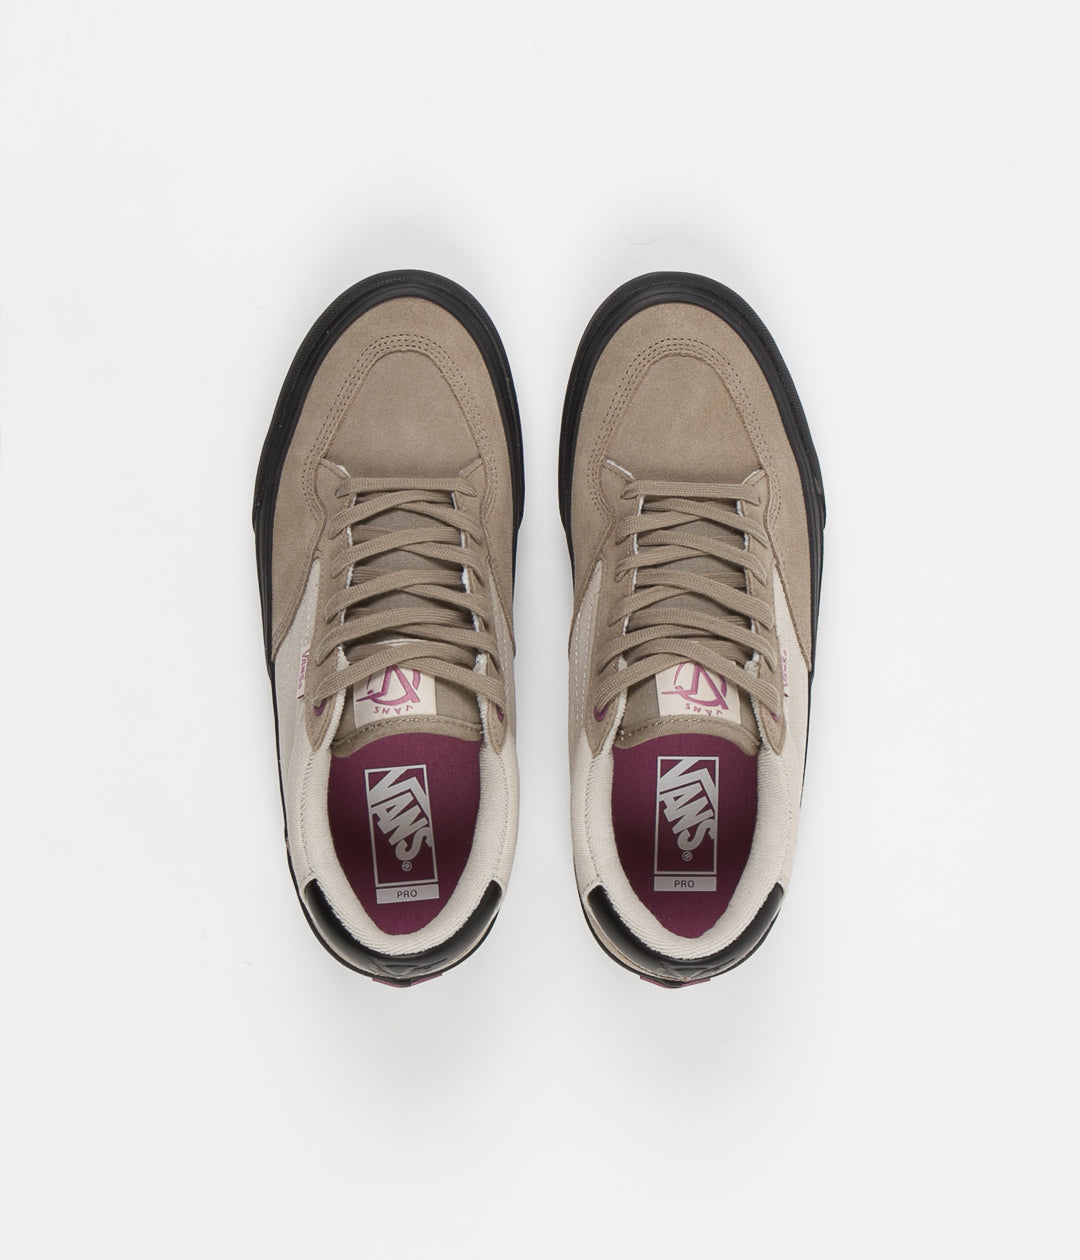 Vans Rowan Pro Shoes - Desert Taupe / Black